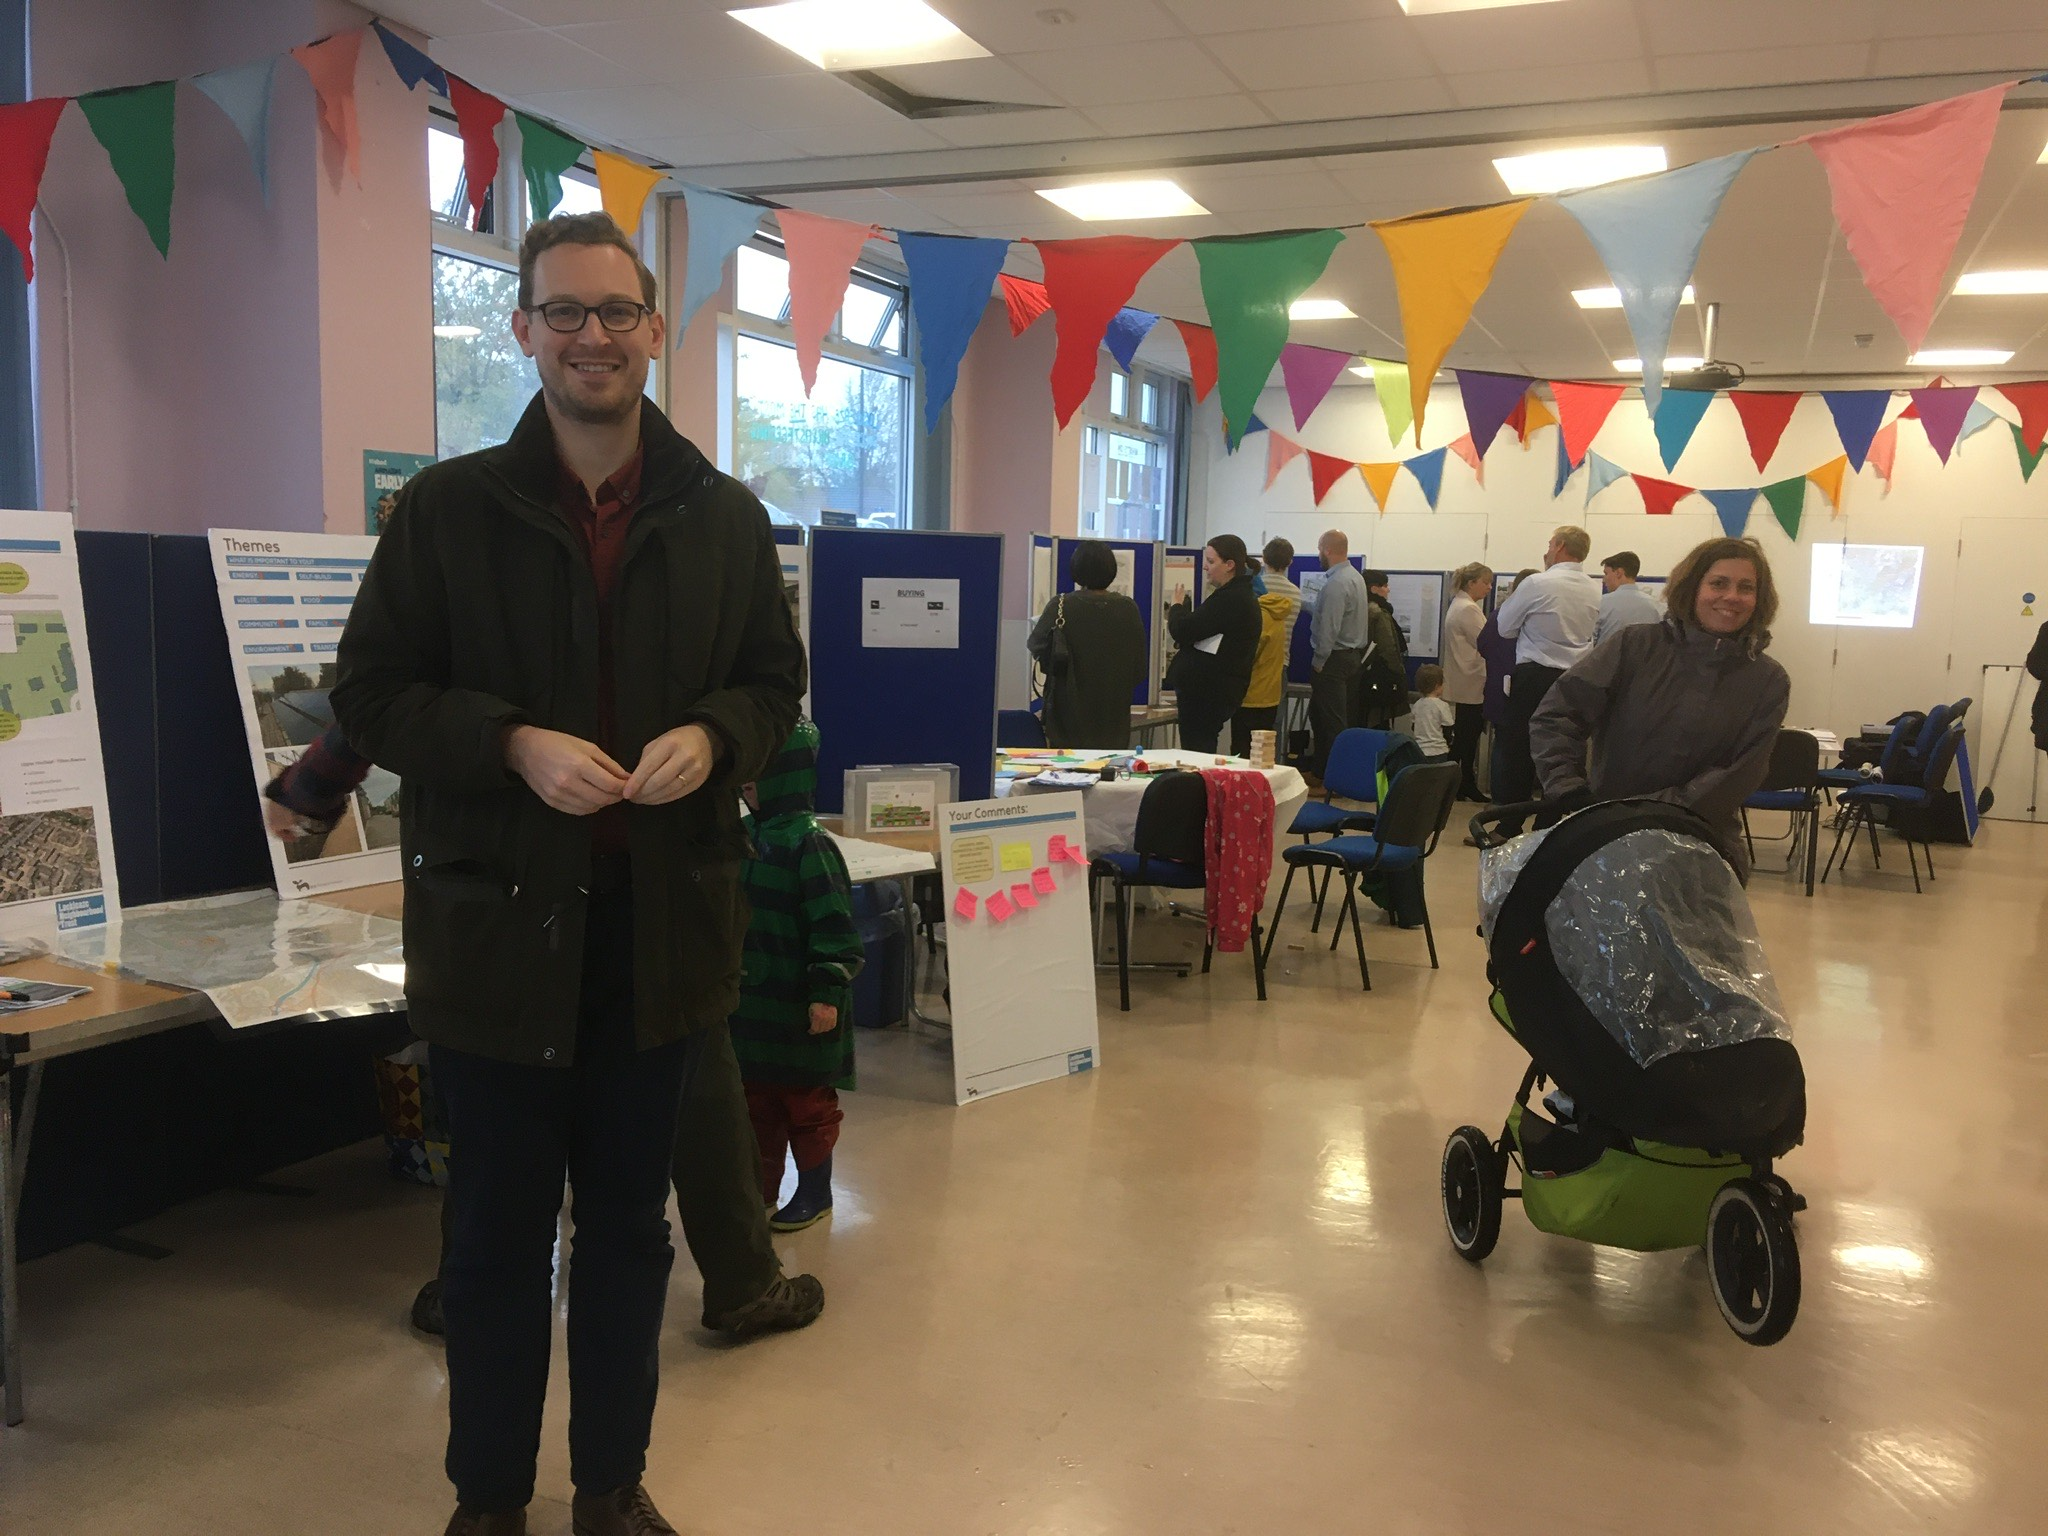 Lockleaze Housing Festival proves to be a great success